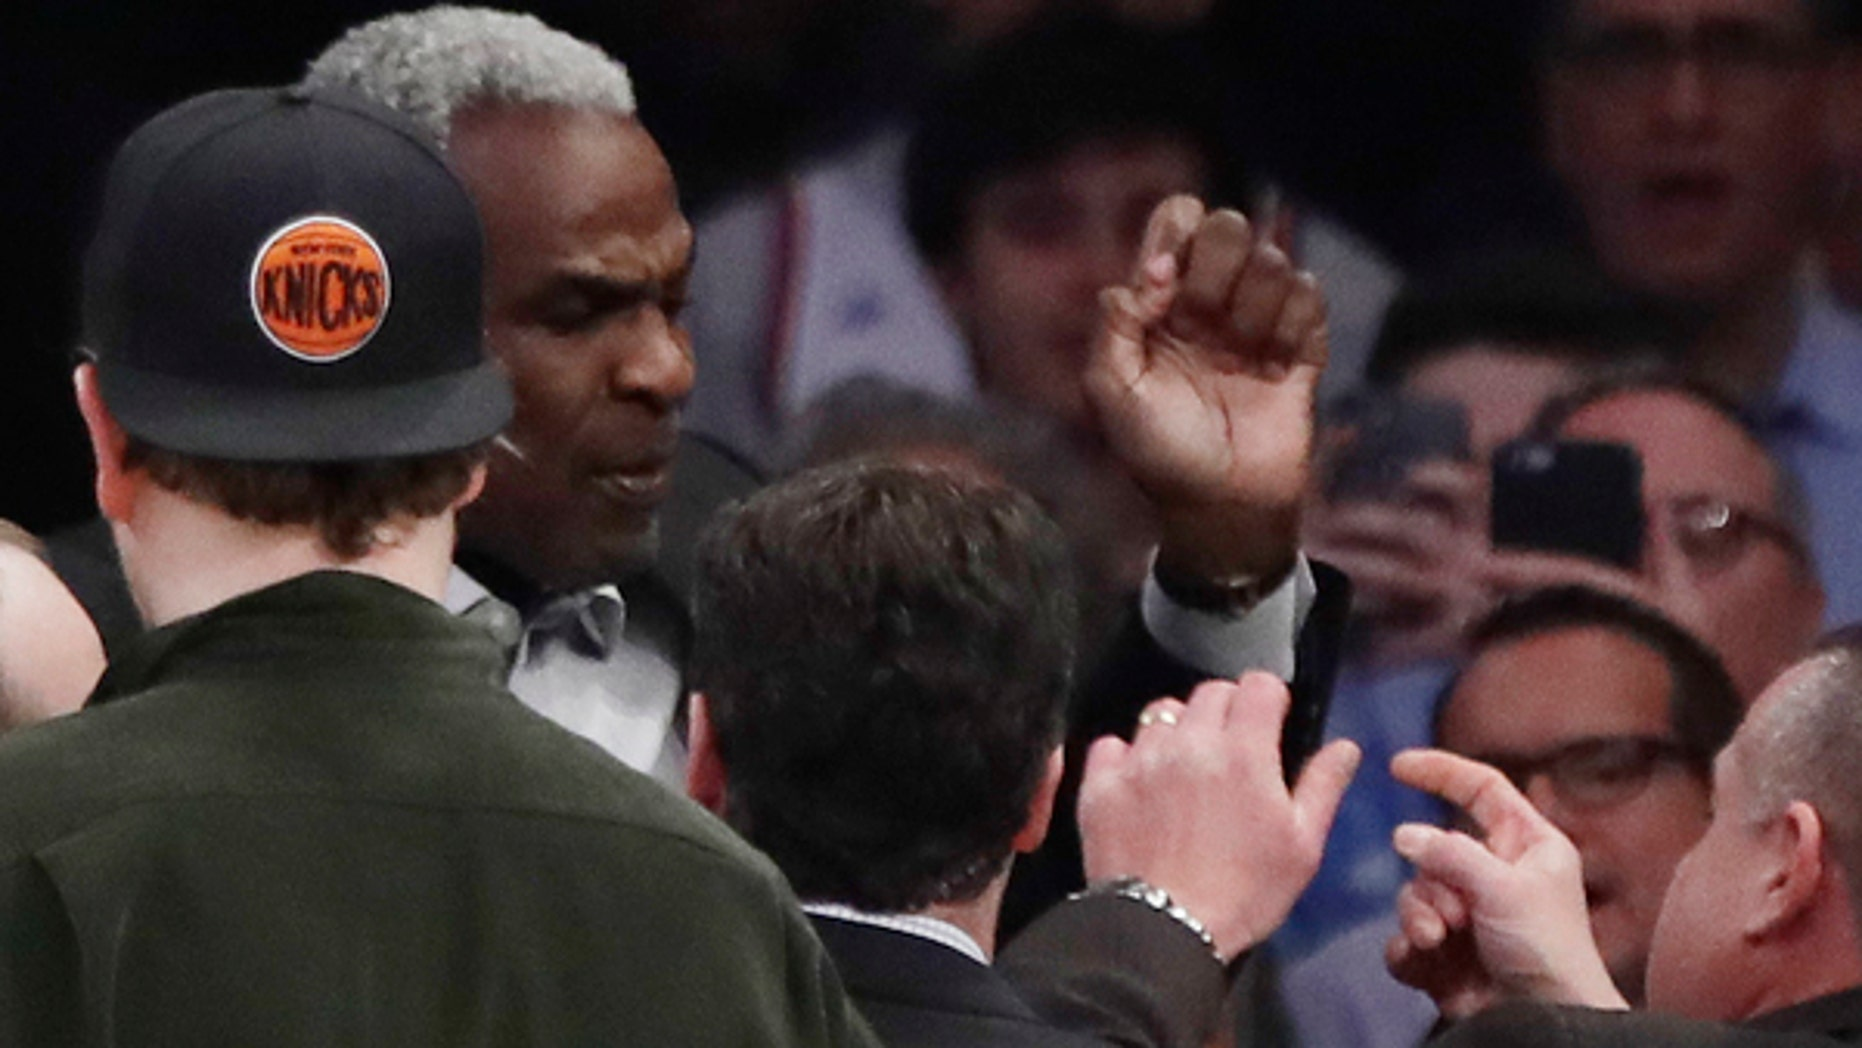 Charles Oakley is confronted by security personnel at Madison Square Garden during a Knicks game.